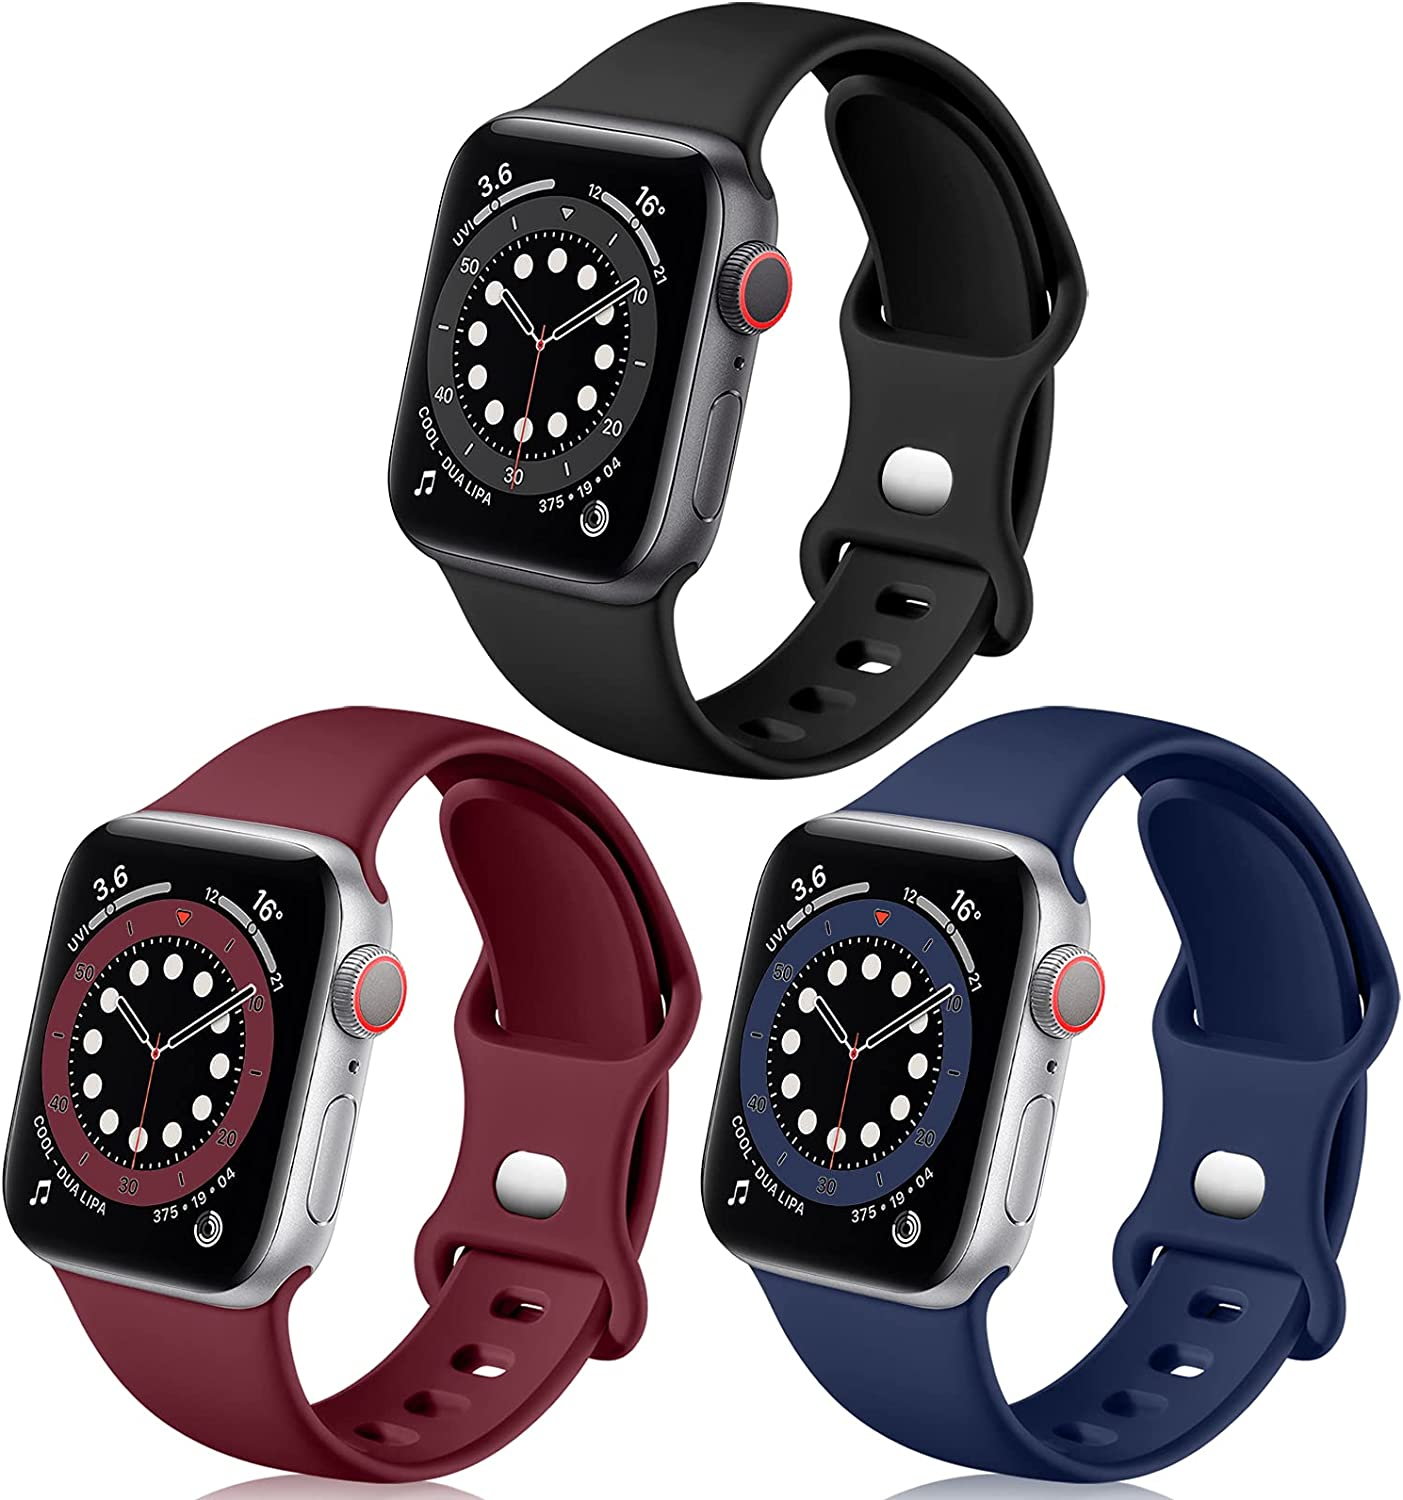 Easuny Sport Bands Compatible with Apple Watch 38m 40mm 42mm 44mm Women Men- Soft Sport Silicone Wristbands Strap Replacement Accessories for iWatch Series 6/5/4/3/2/1,3 Pack S/M M/L